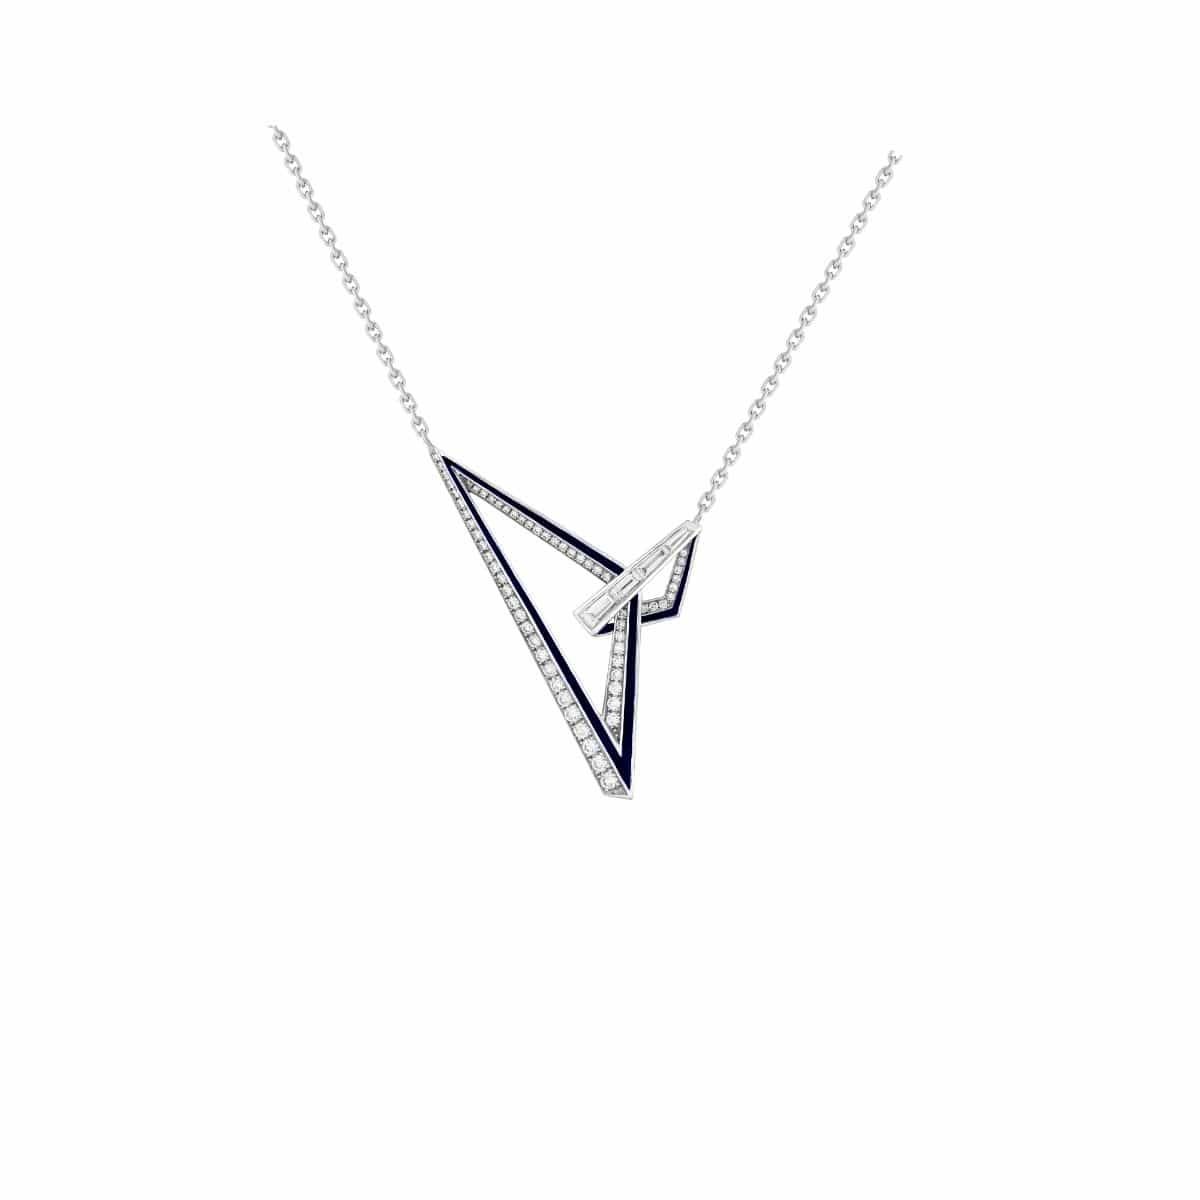 VERTIGO OBTUSE PAVÉ NECKLACE White Gold